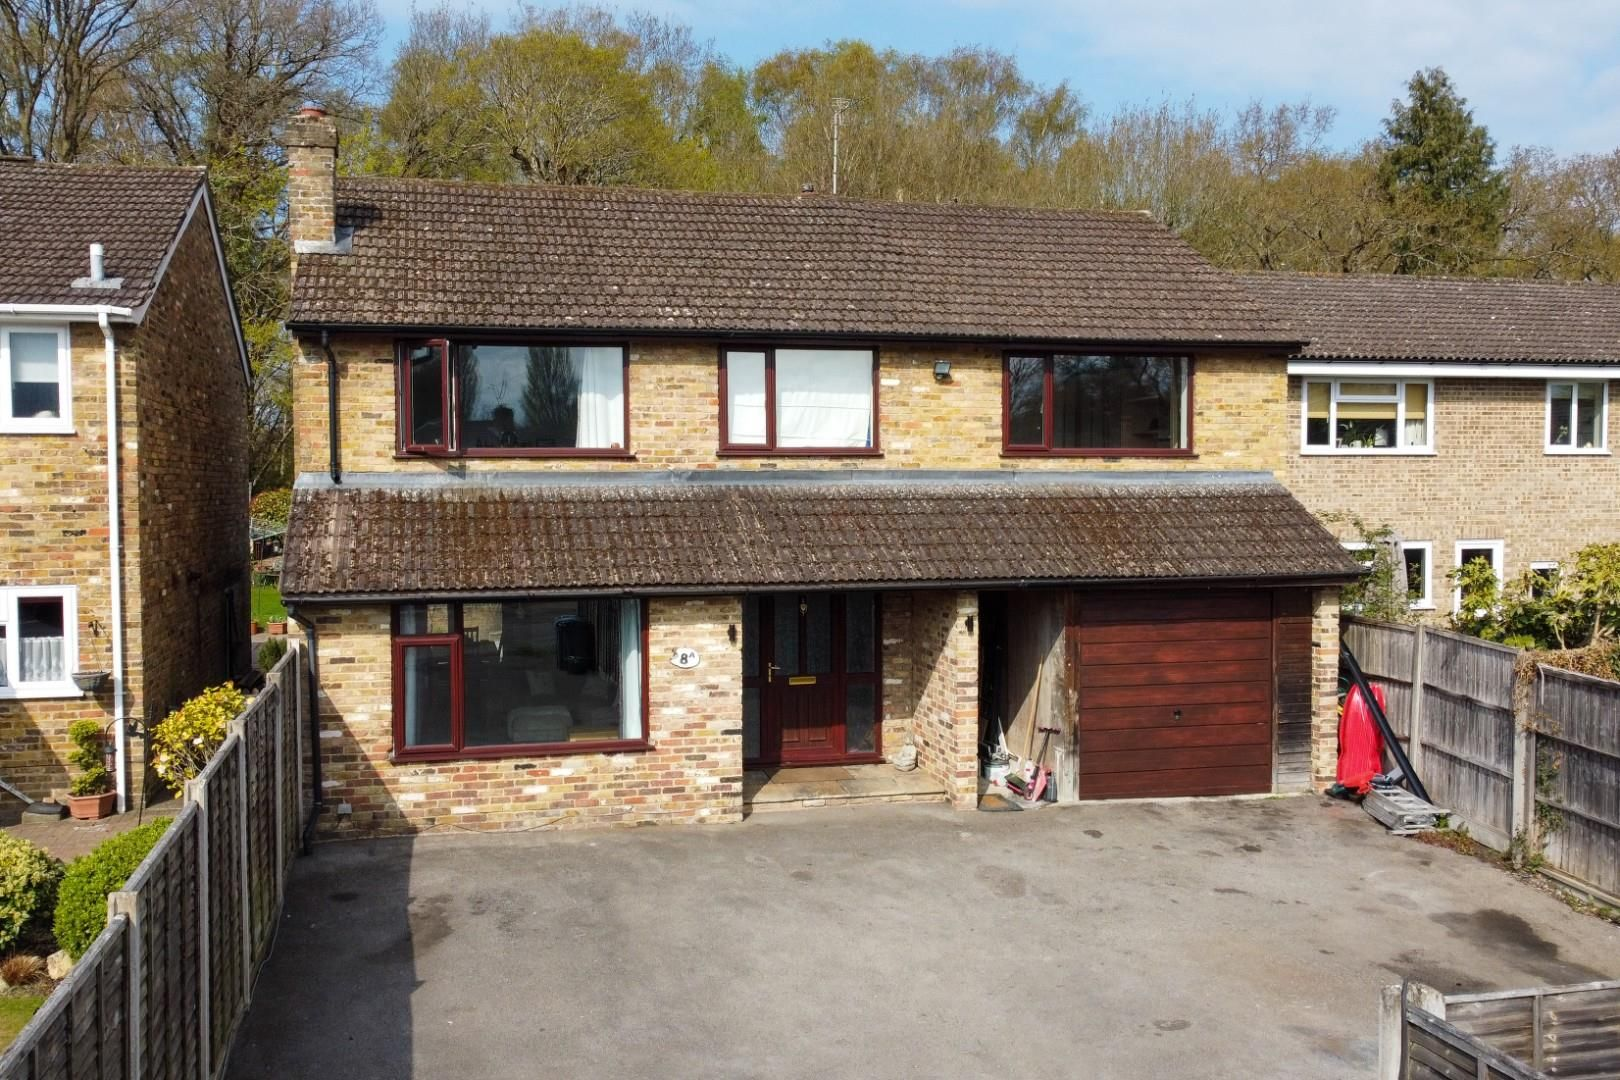 5 bed detached for sale in Blackwater  - Property Image 1